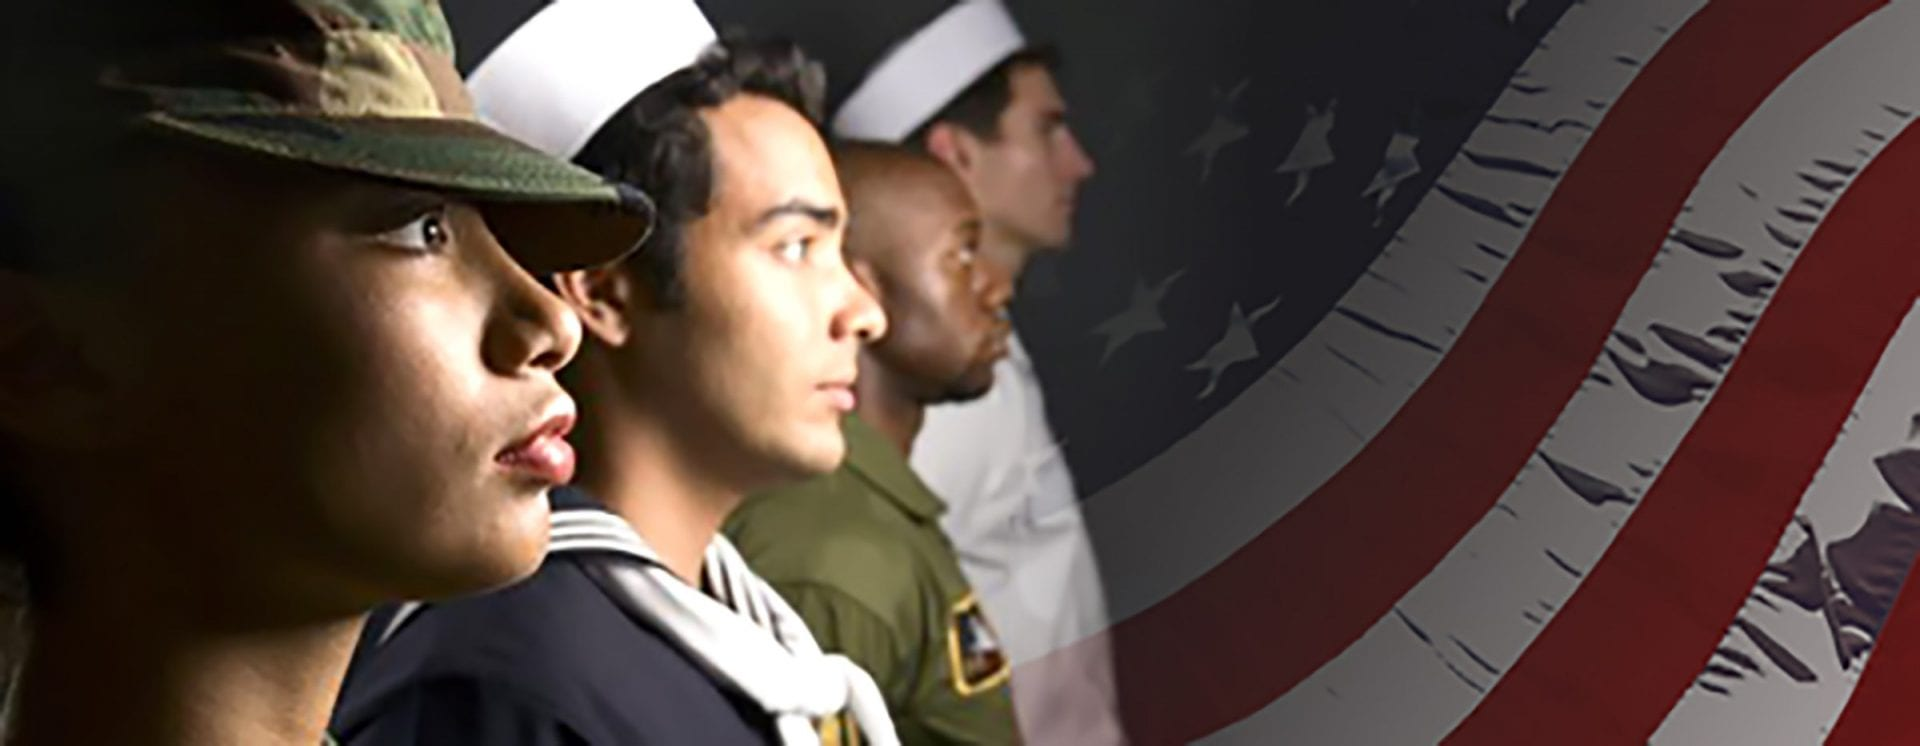 reduced membership rates for military